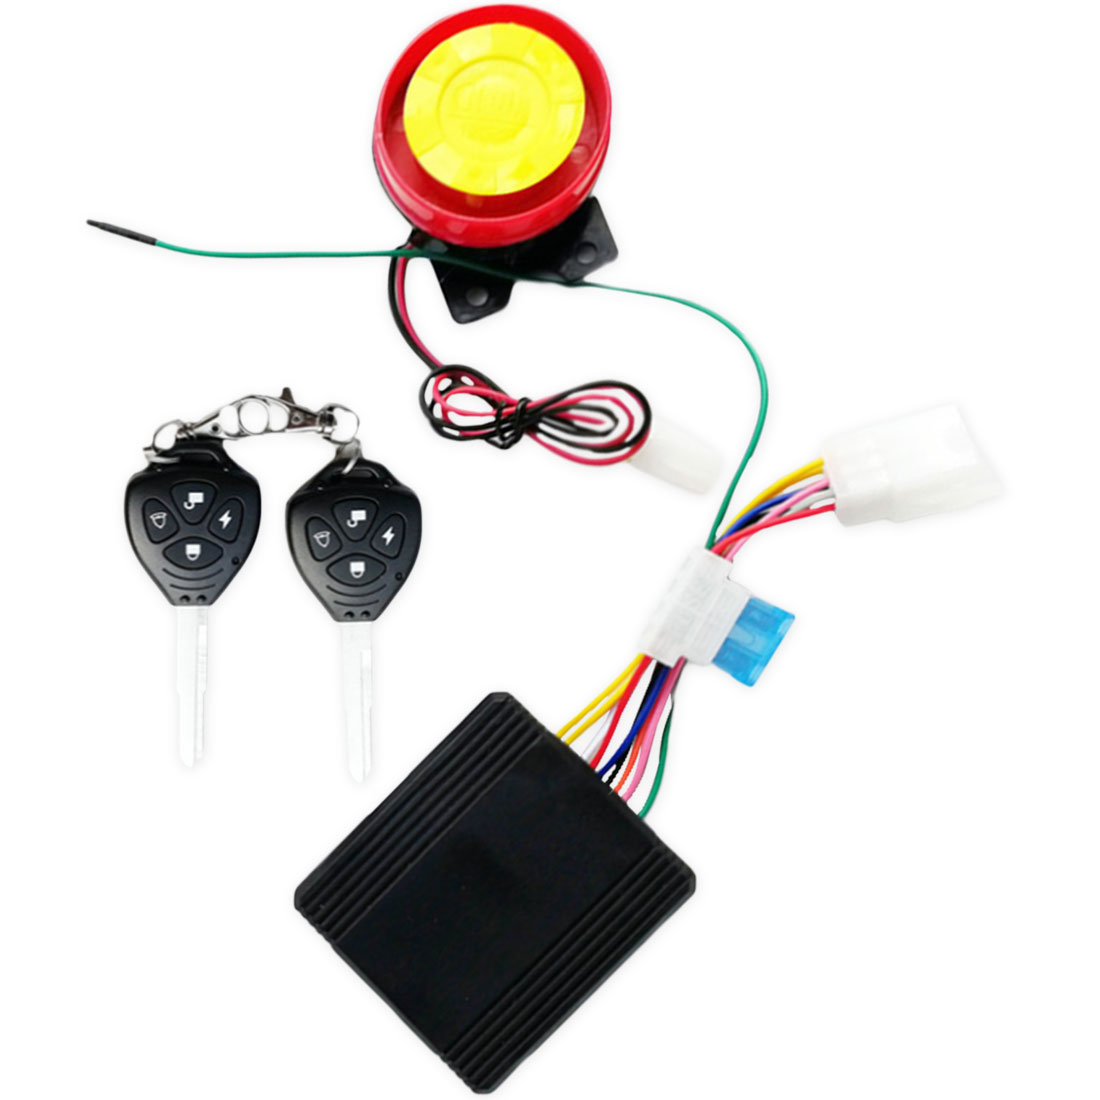 Full Function Accessories Report Motorcycle Alarm Motorcycle Alarm Key Integrated Waterproof Remote Control Belt Start Flameout